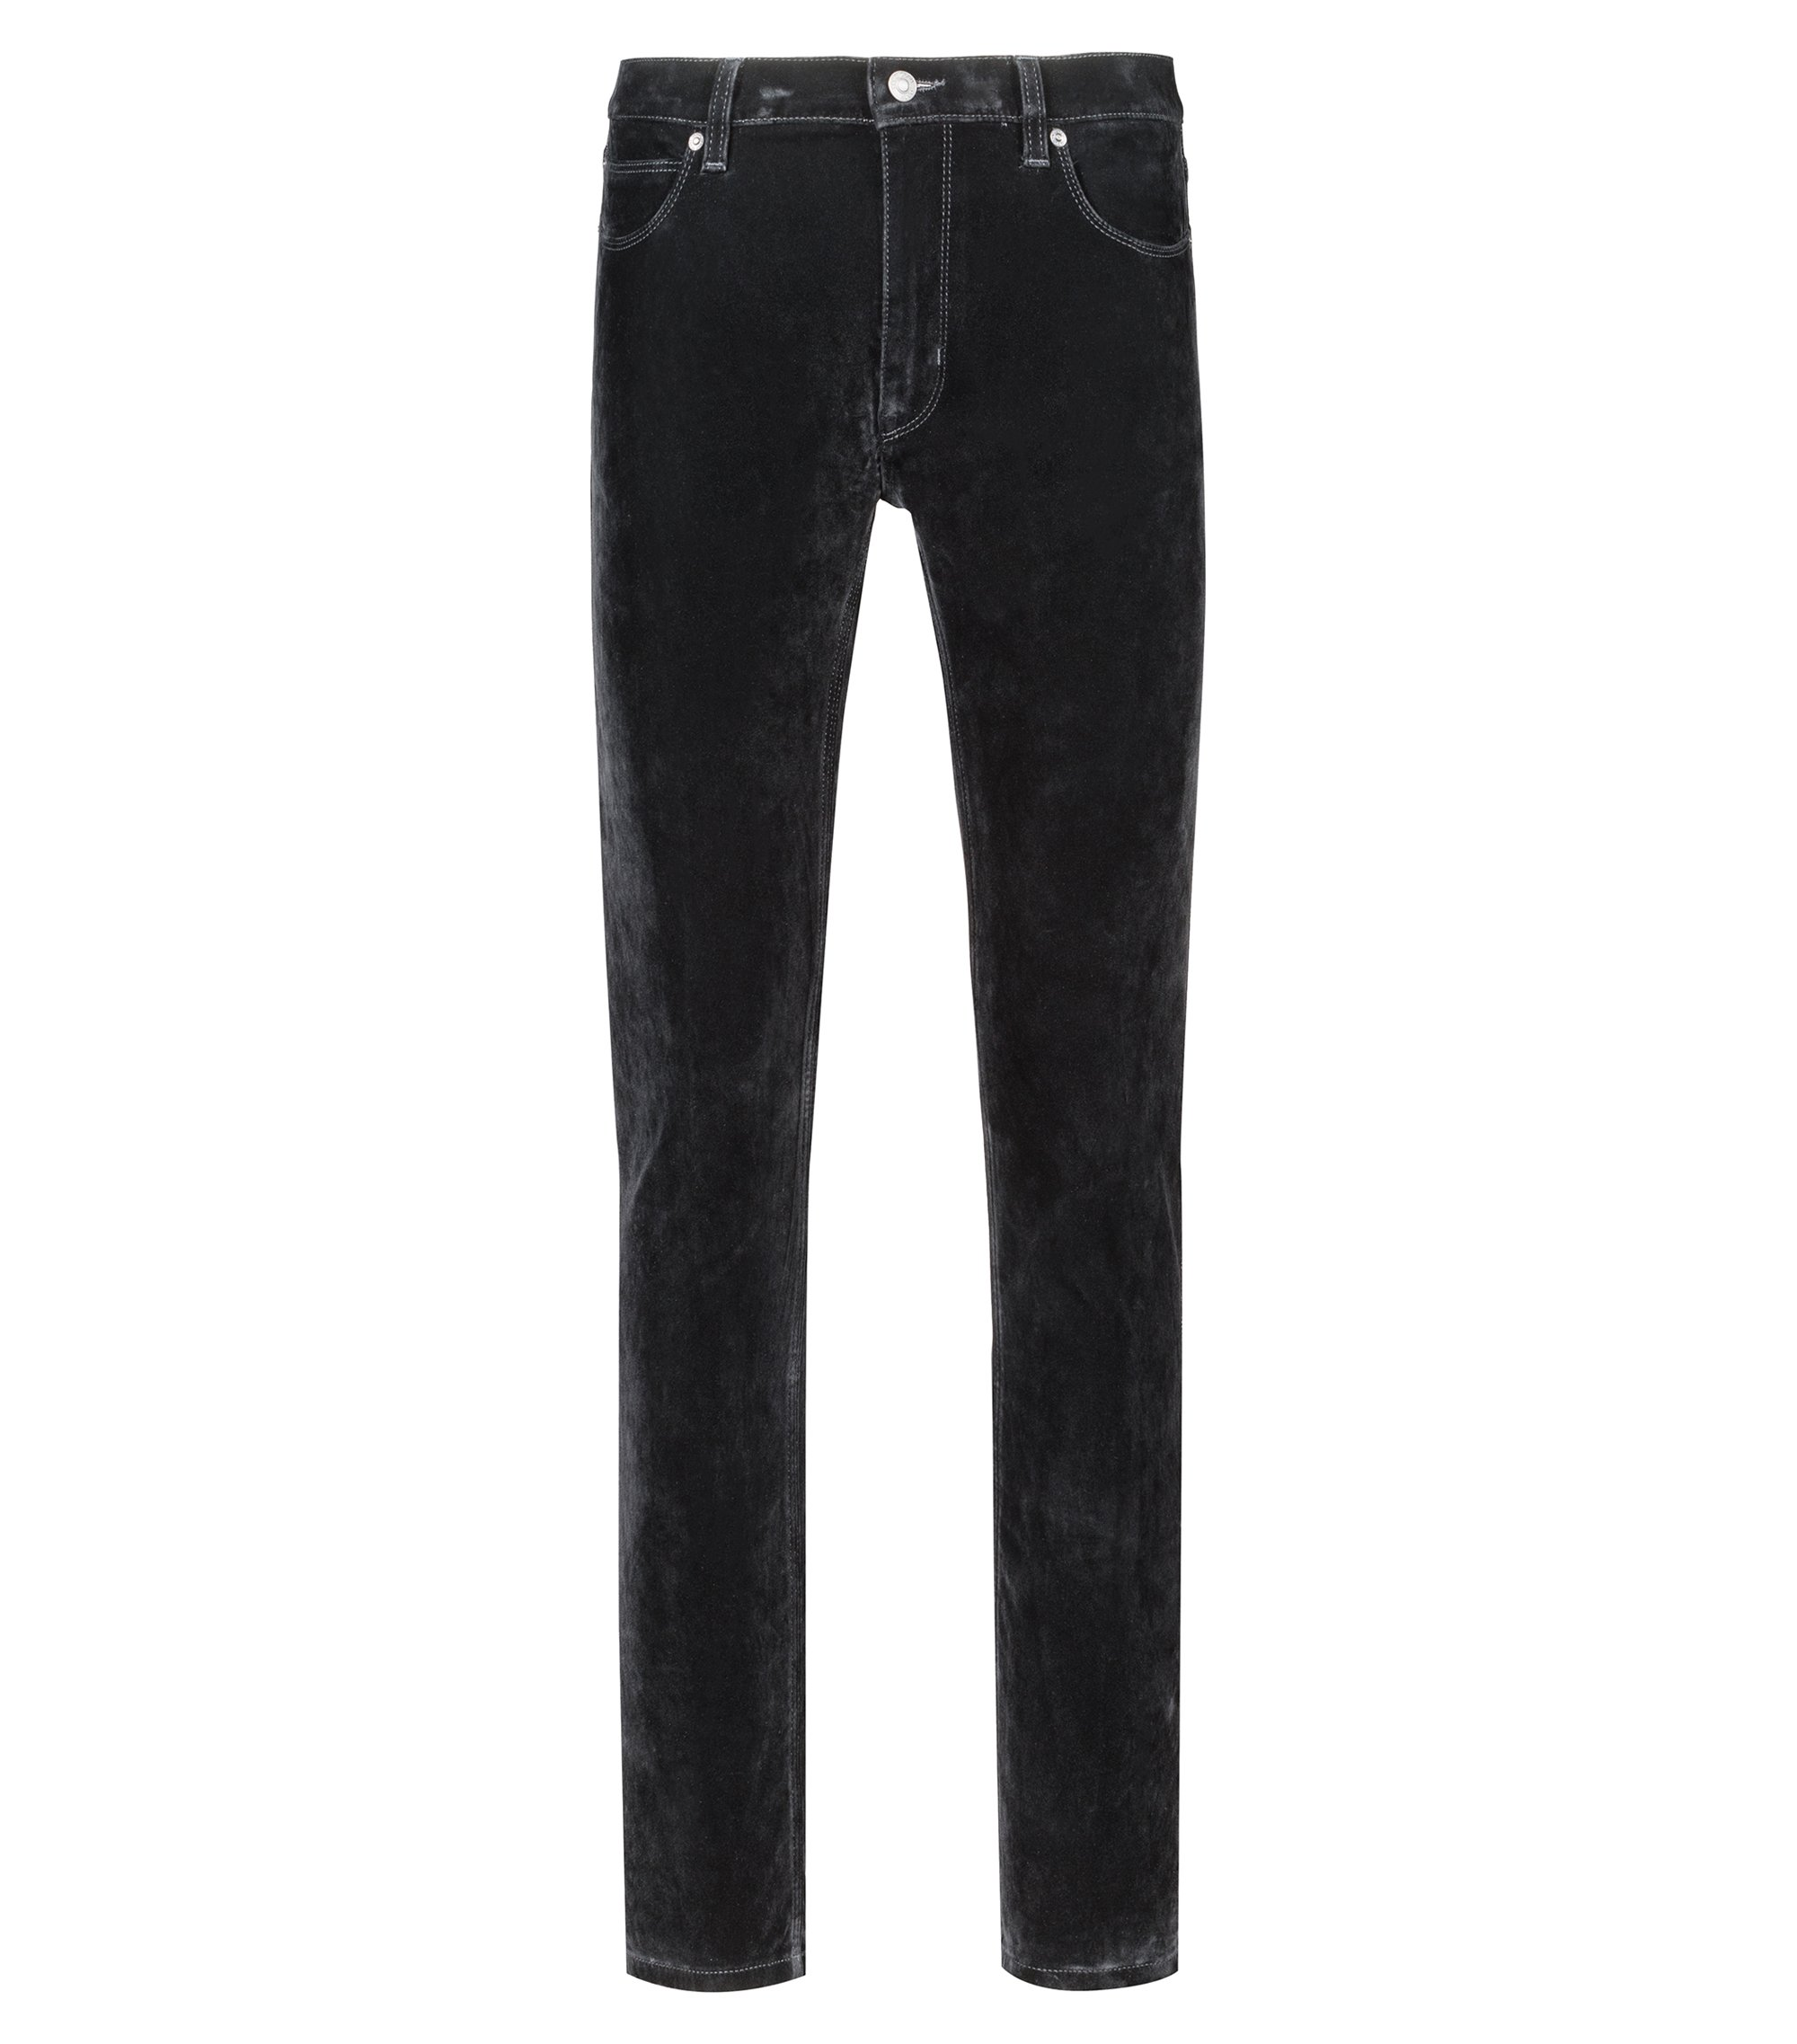 Skinny-Fit Jeans aus Super-Stretch-Denim mit Samt-Finish, Schwarz